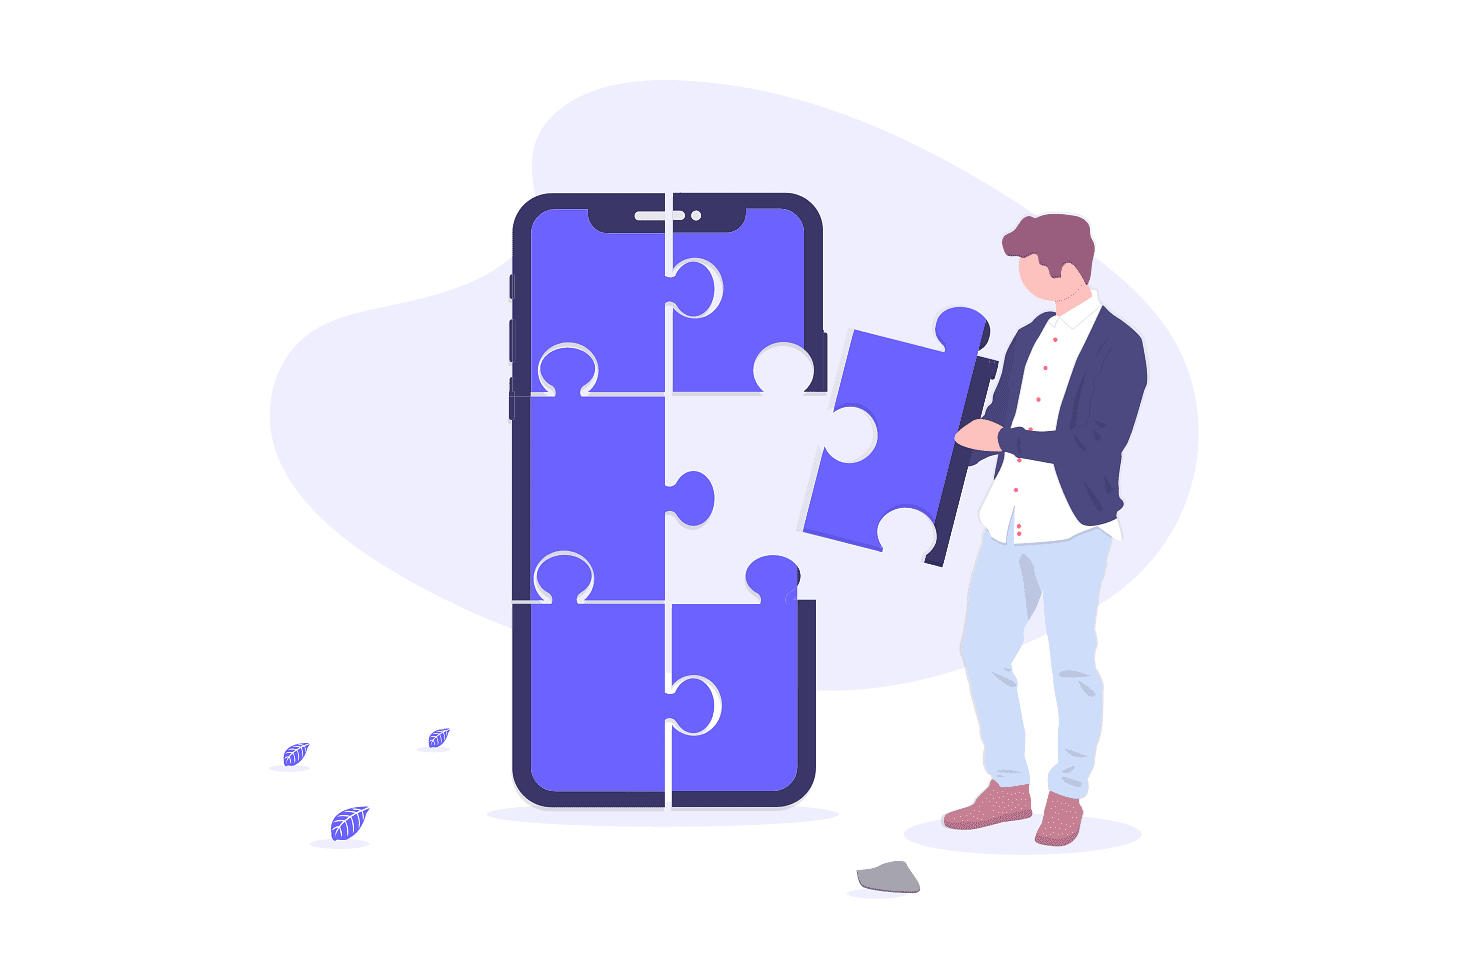 Illustration of man building a phone with puzzle pieces